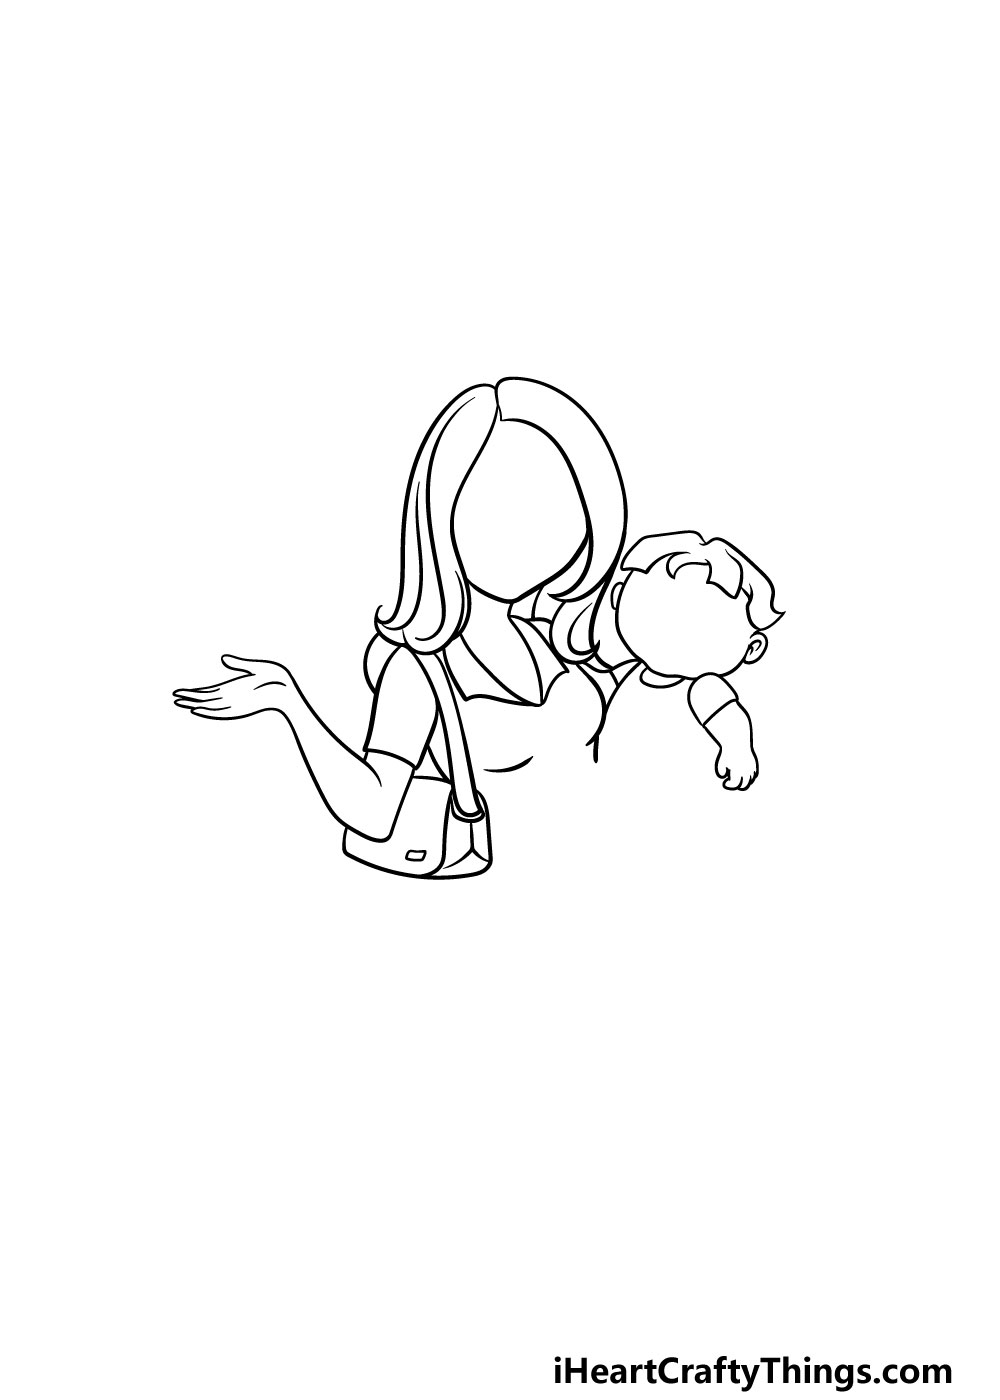 drawing a mom step 3